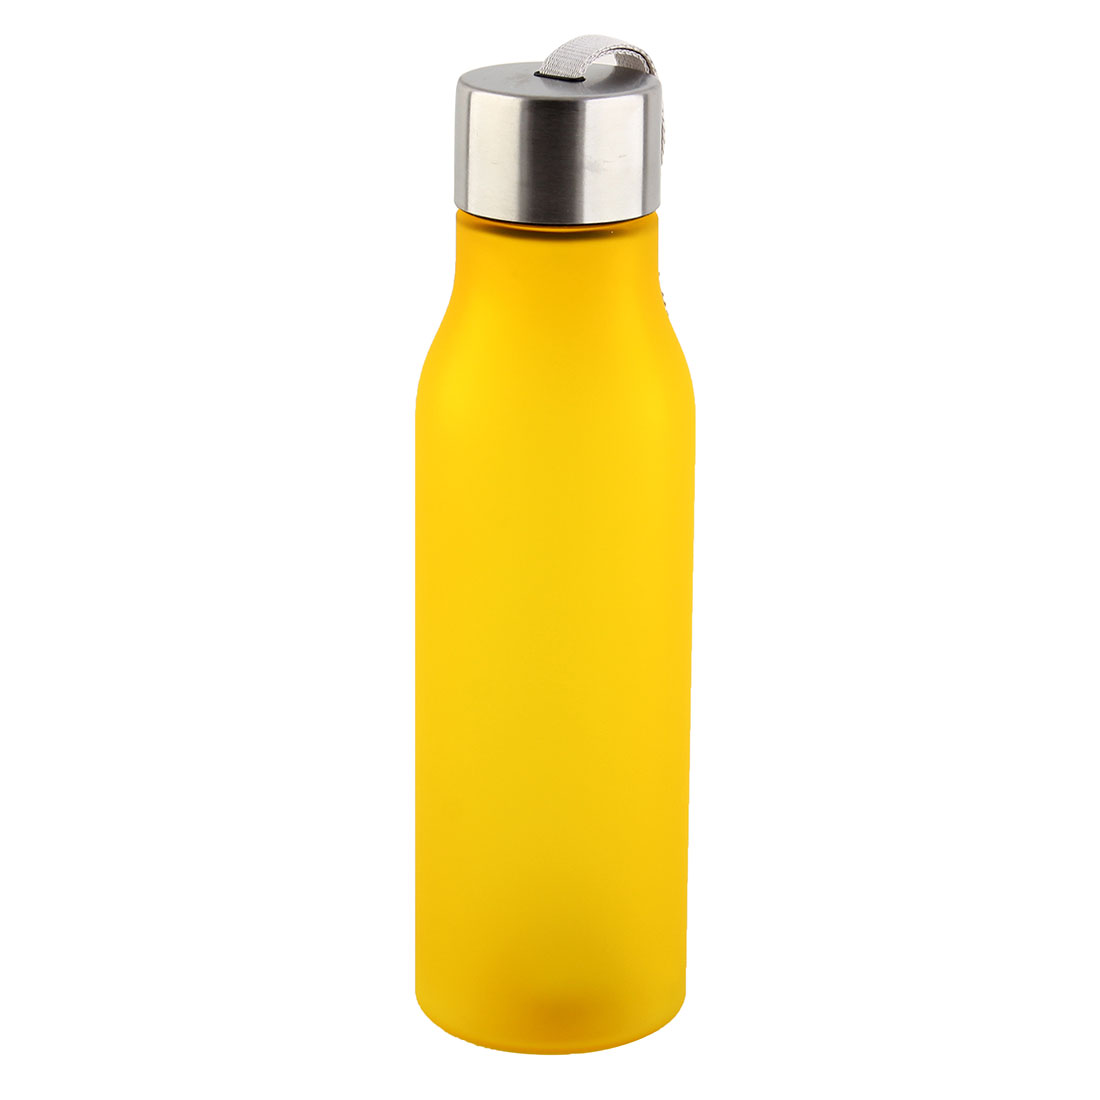 Outdoor Plastic Frosted Water Bottle Portable Fruit Juice Mug Running Cycling Cup Camping Hiking Kettle Yellow 570ml